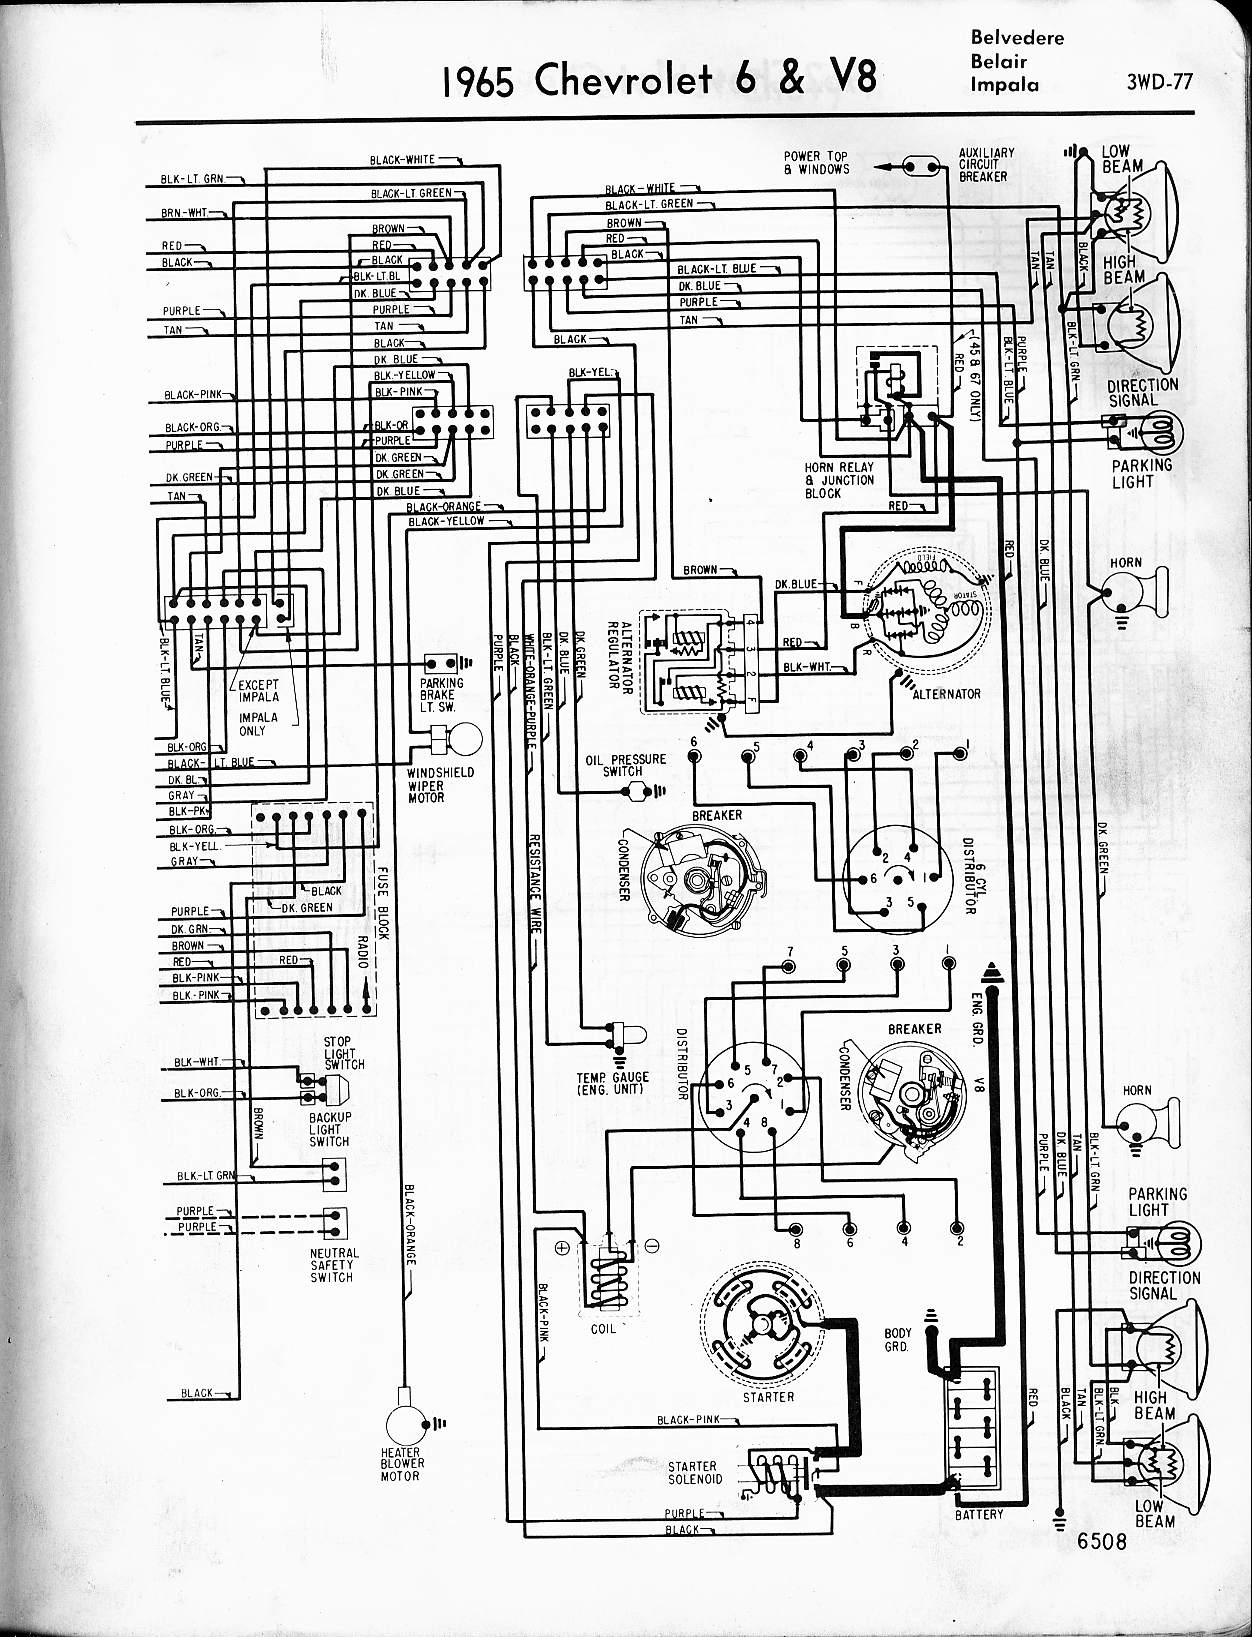 1969 Chevelle Wiring Diagram: